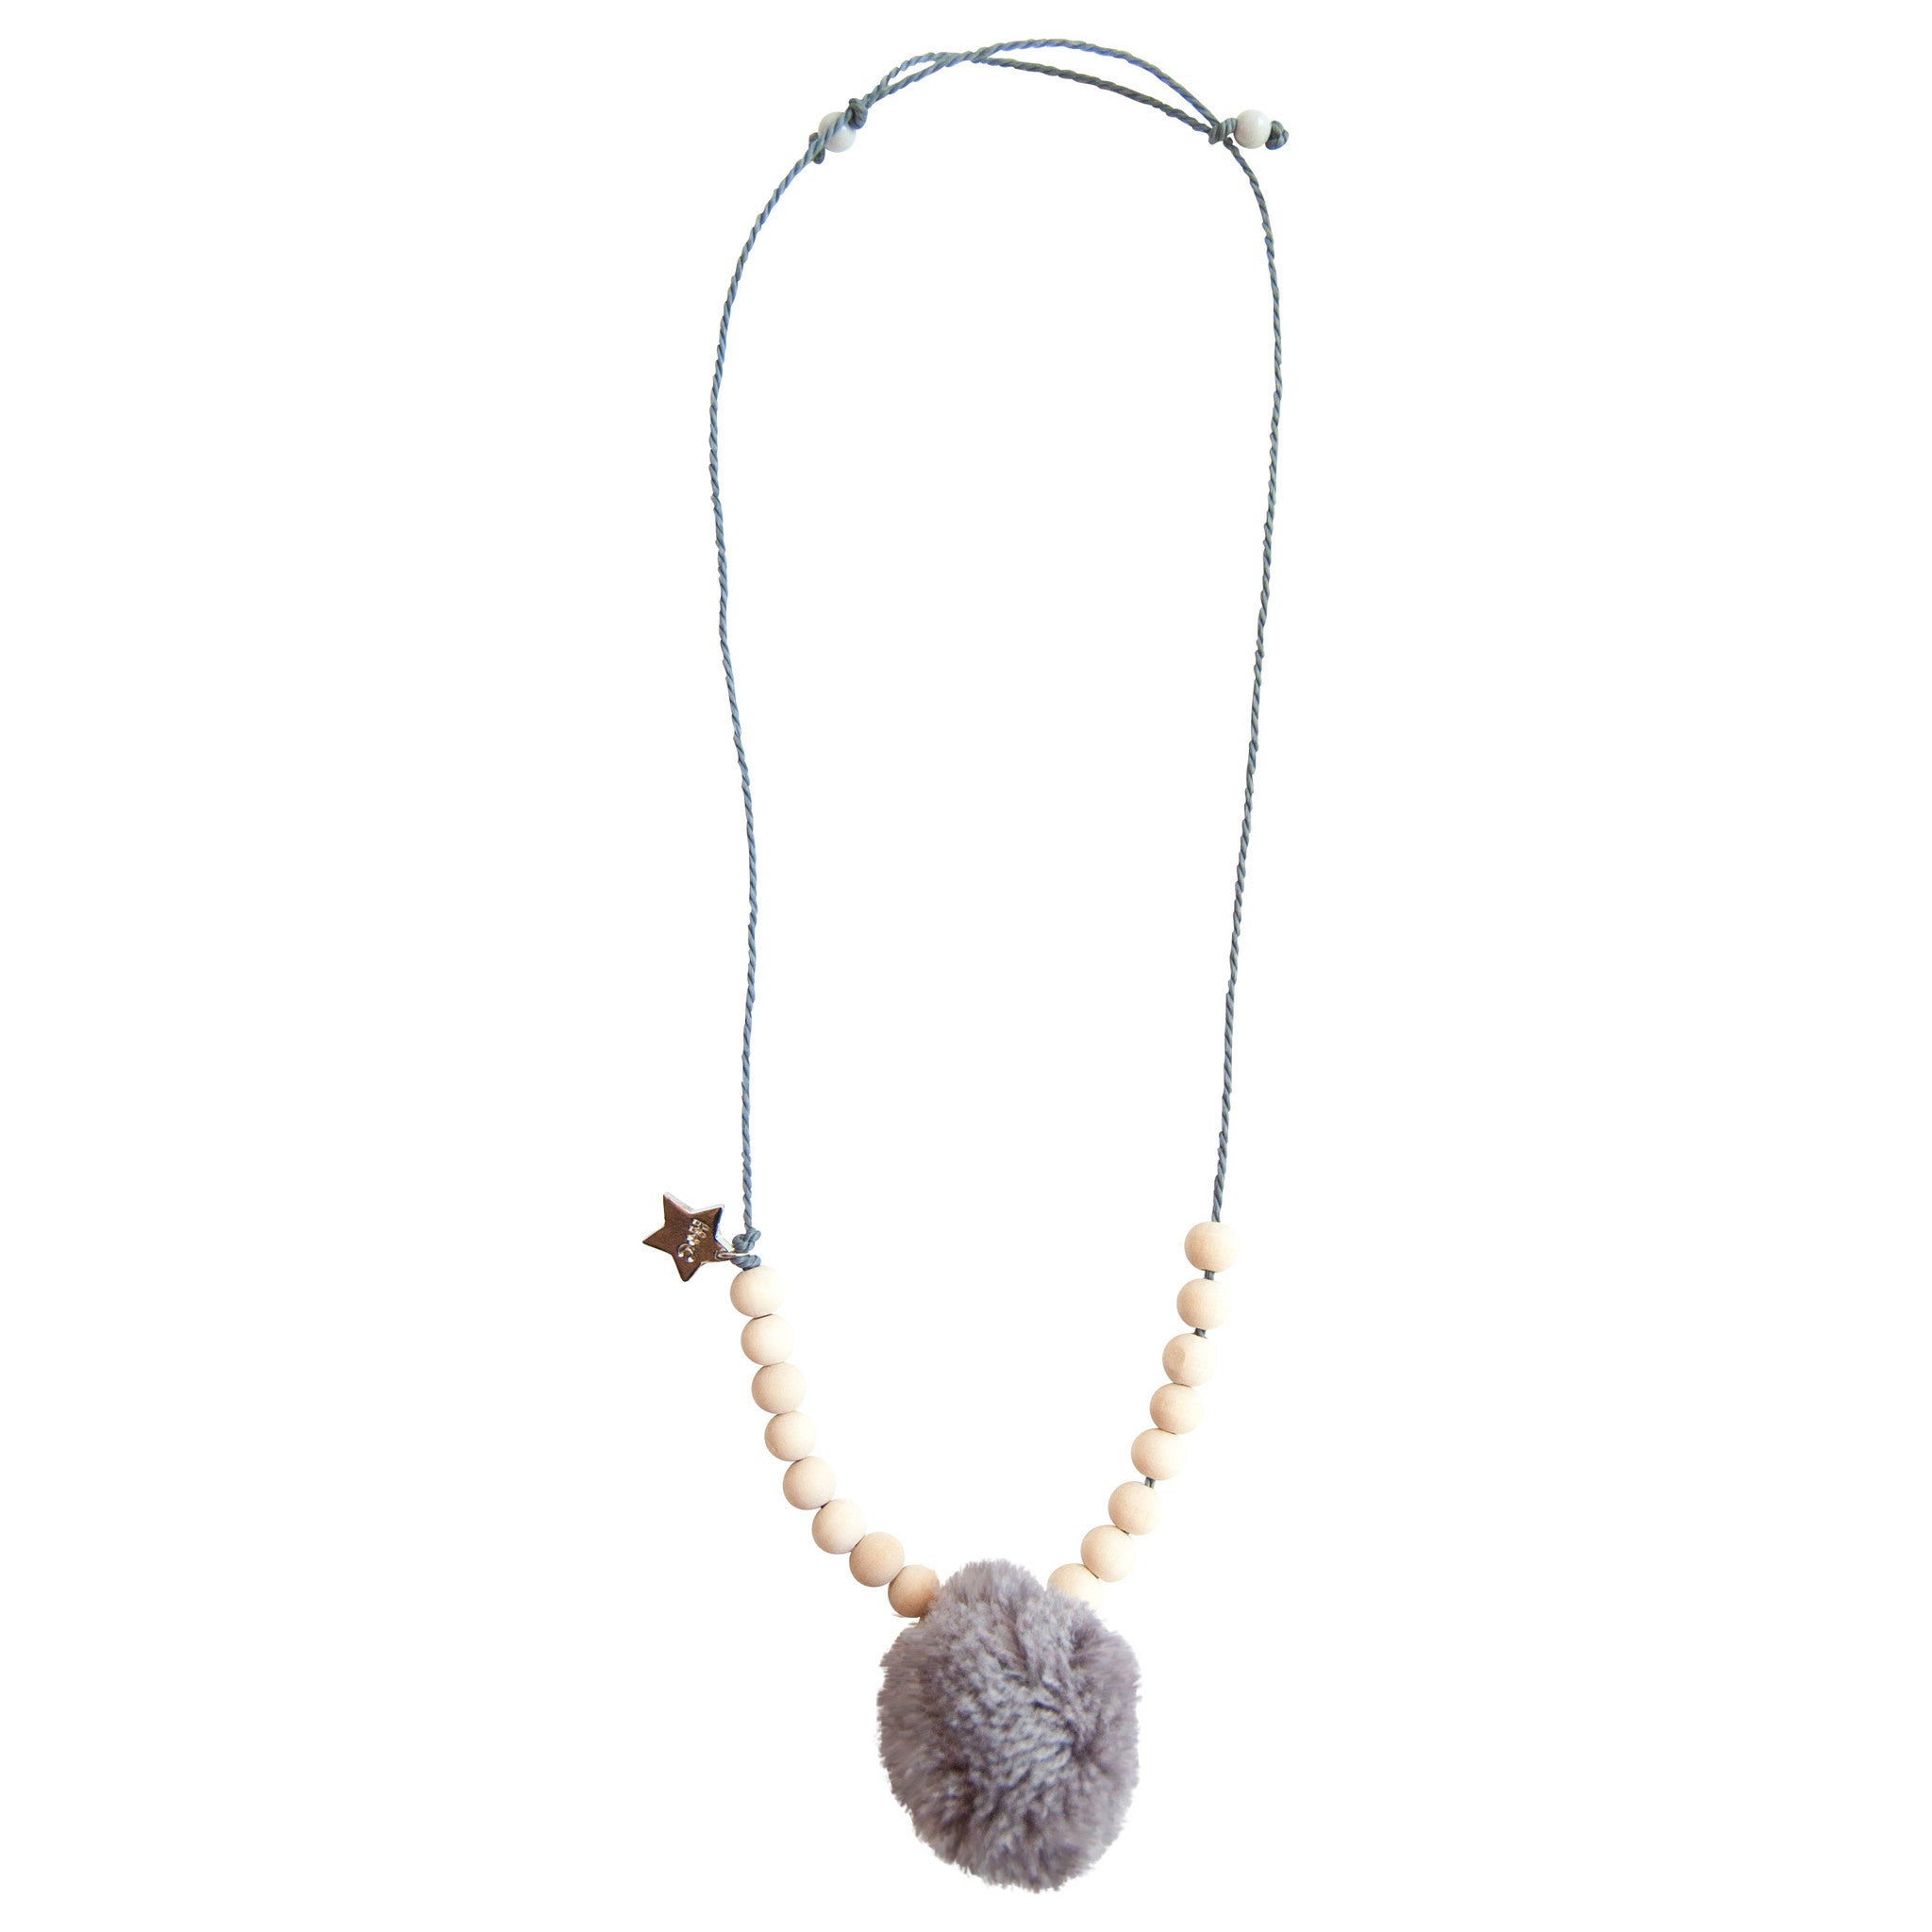 Pepita Pom Necklace in Cloud - Noa & Vivi Kids Apparel